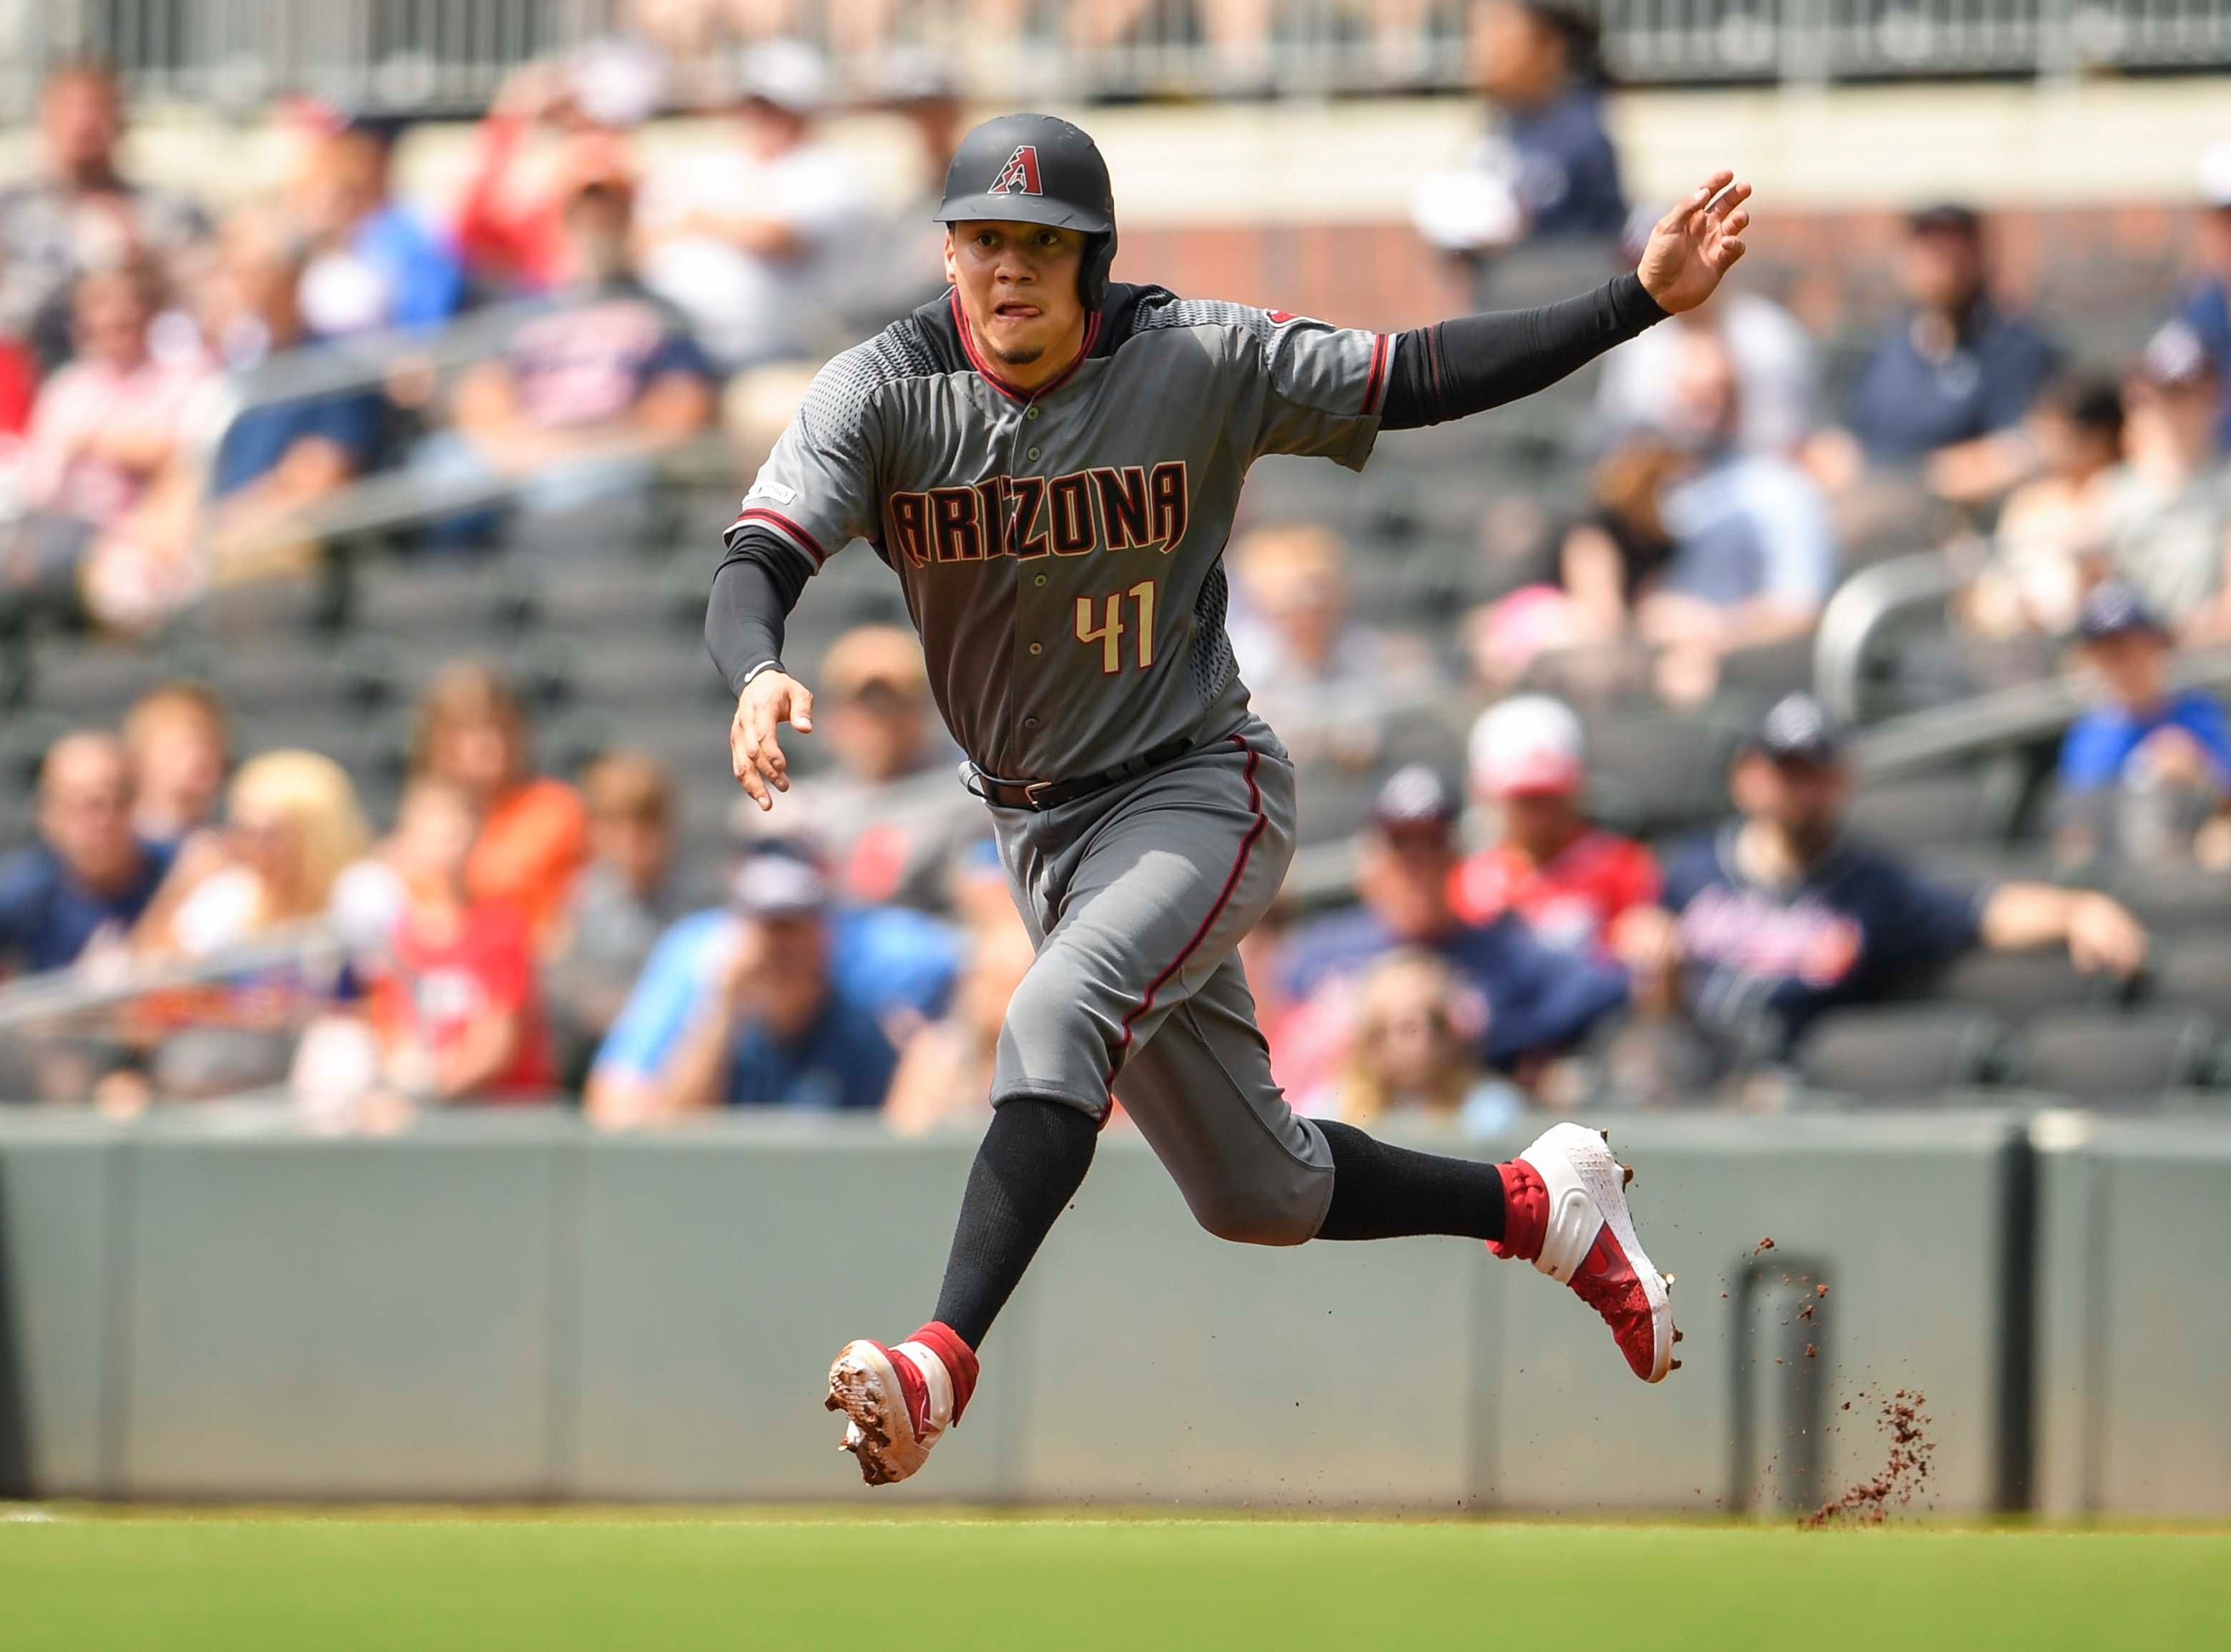 Apr 18, 2019; Atlanta, GA, USA; Arizona Diamondbacks second baseman Wilmer Flores (41) shown running the bases prior to scoring against the Atlanta Braves during the first inning at SunTrust Park. Mandatory Credit: Dale Zanine-USA TODAY Sports